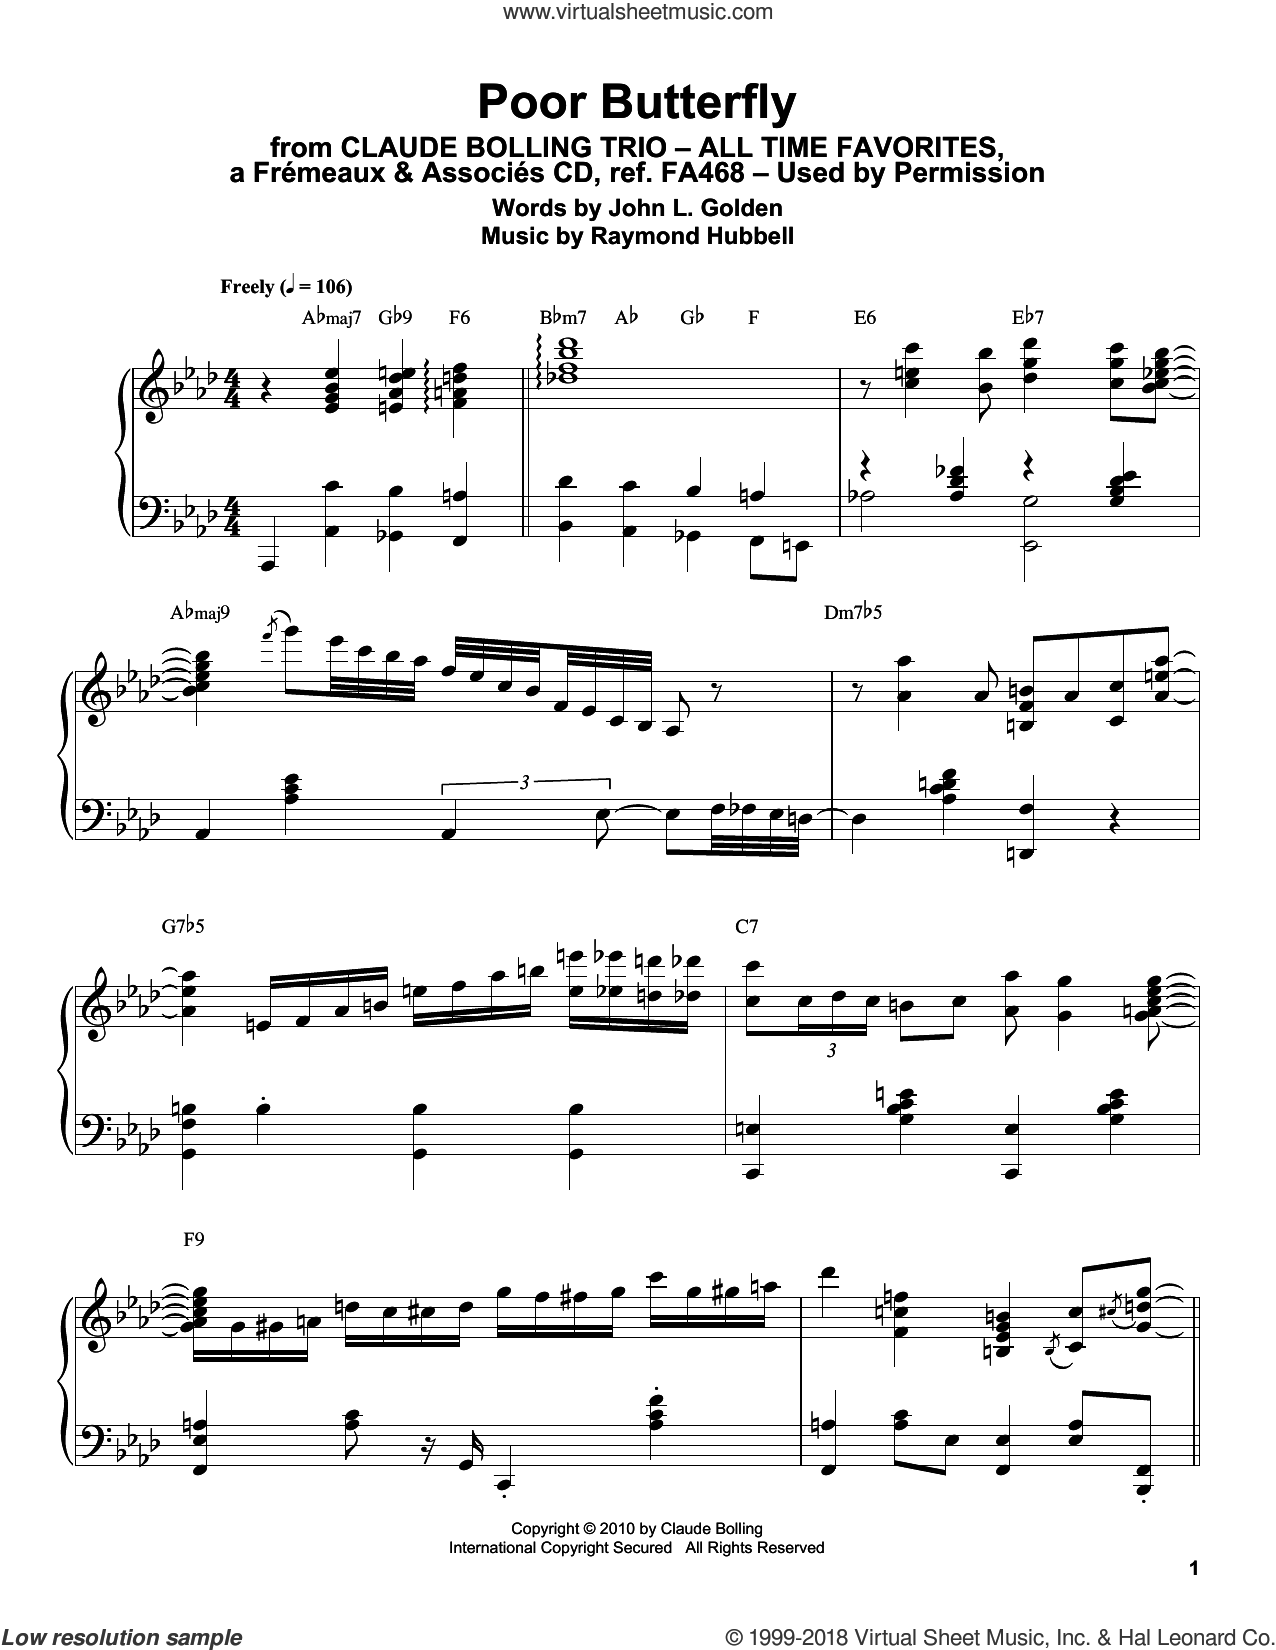 Poor Butterfly sheet music for piano solo (transcription) by Claude Bolling, John L. Golden and Raymond Hubbell, intermediate piano (transcription)